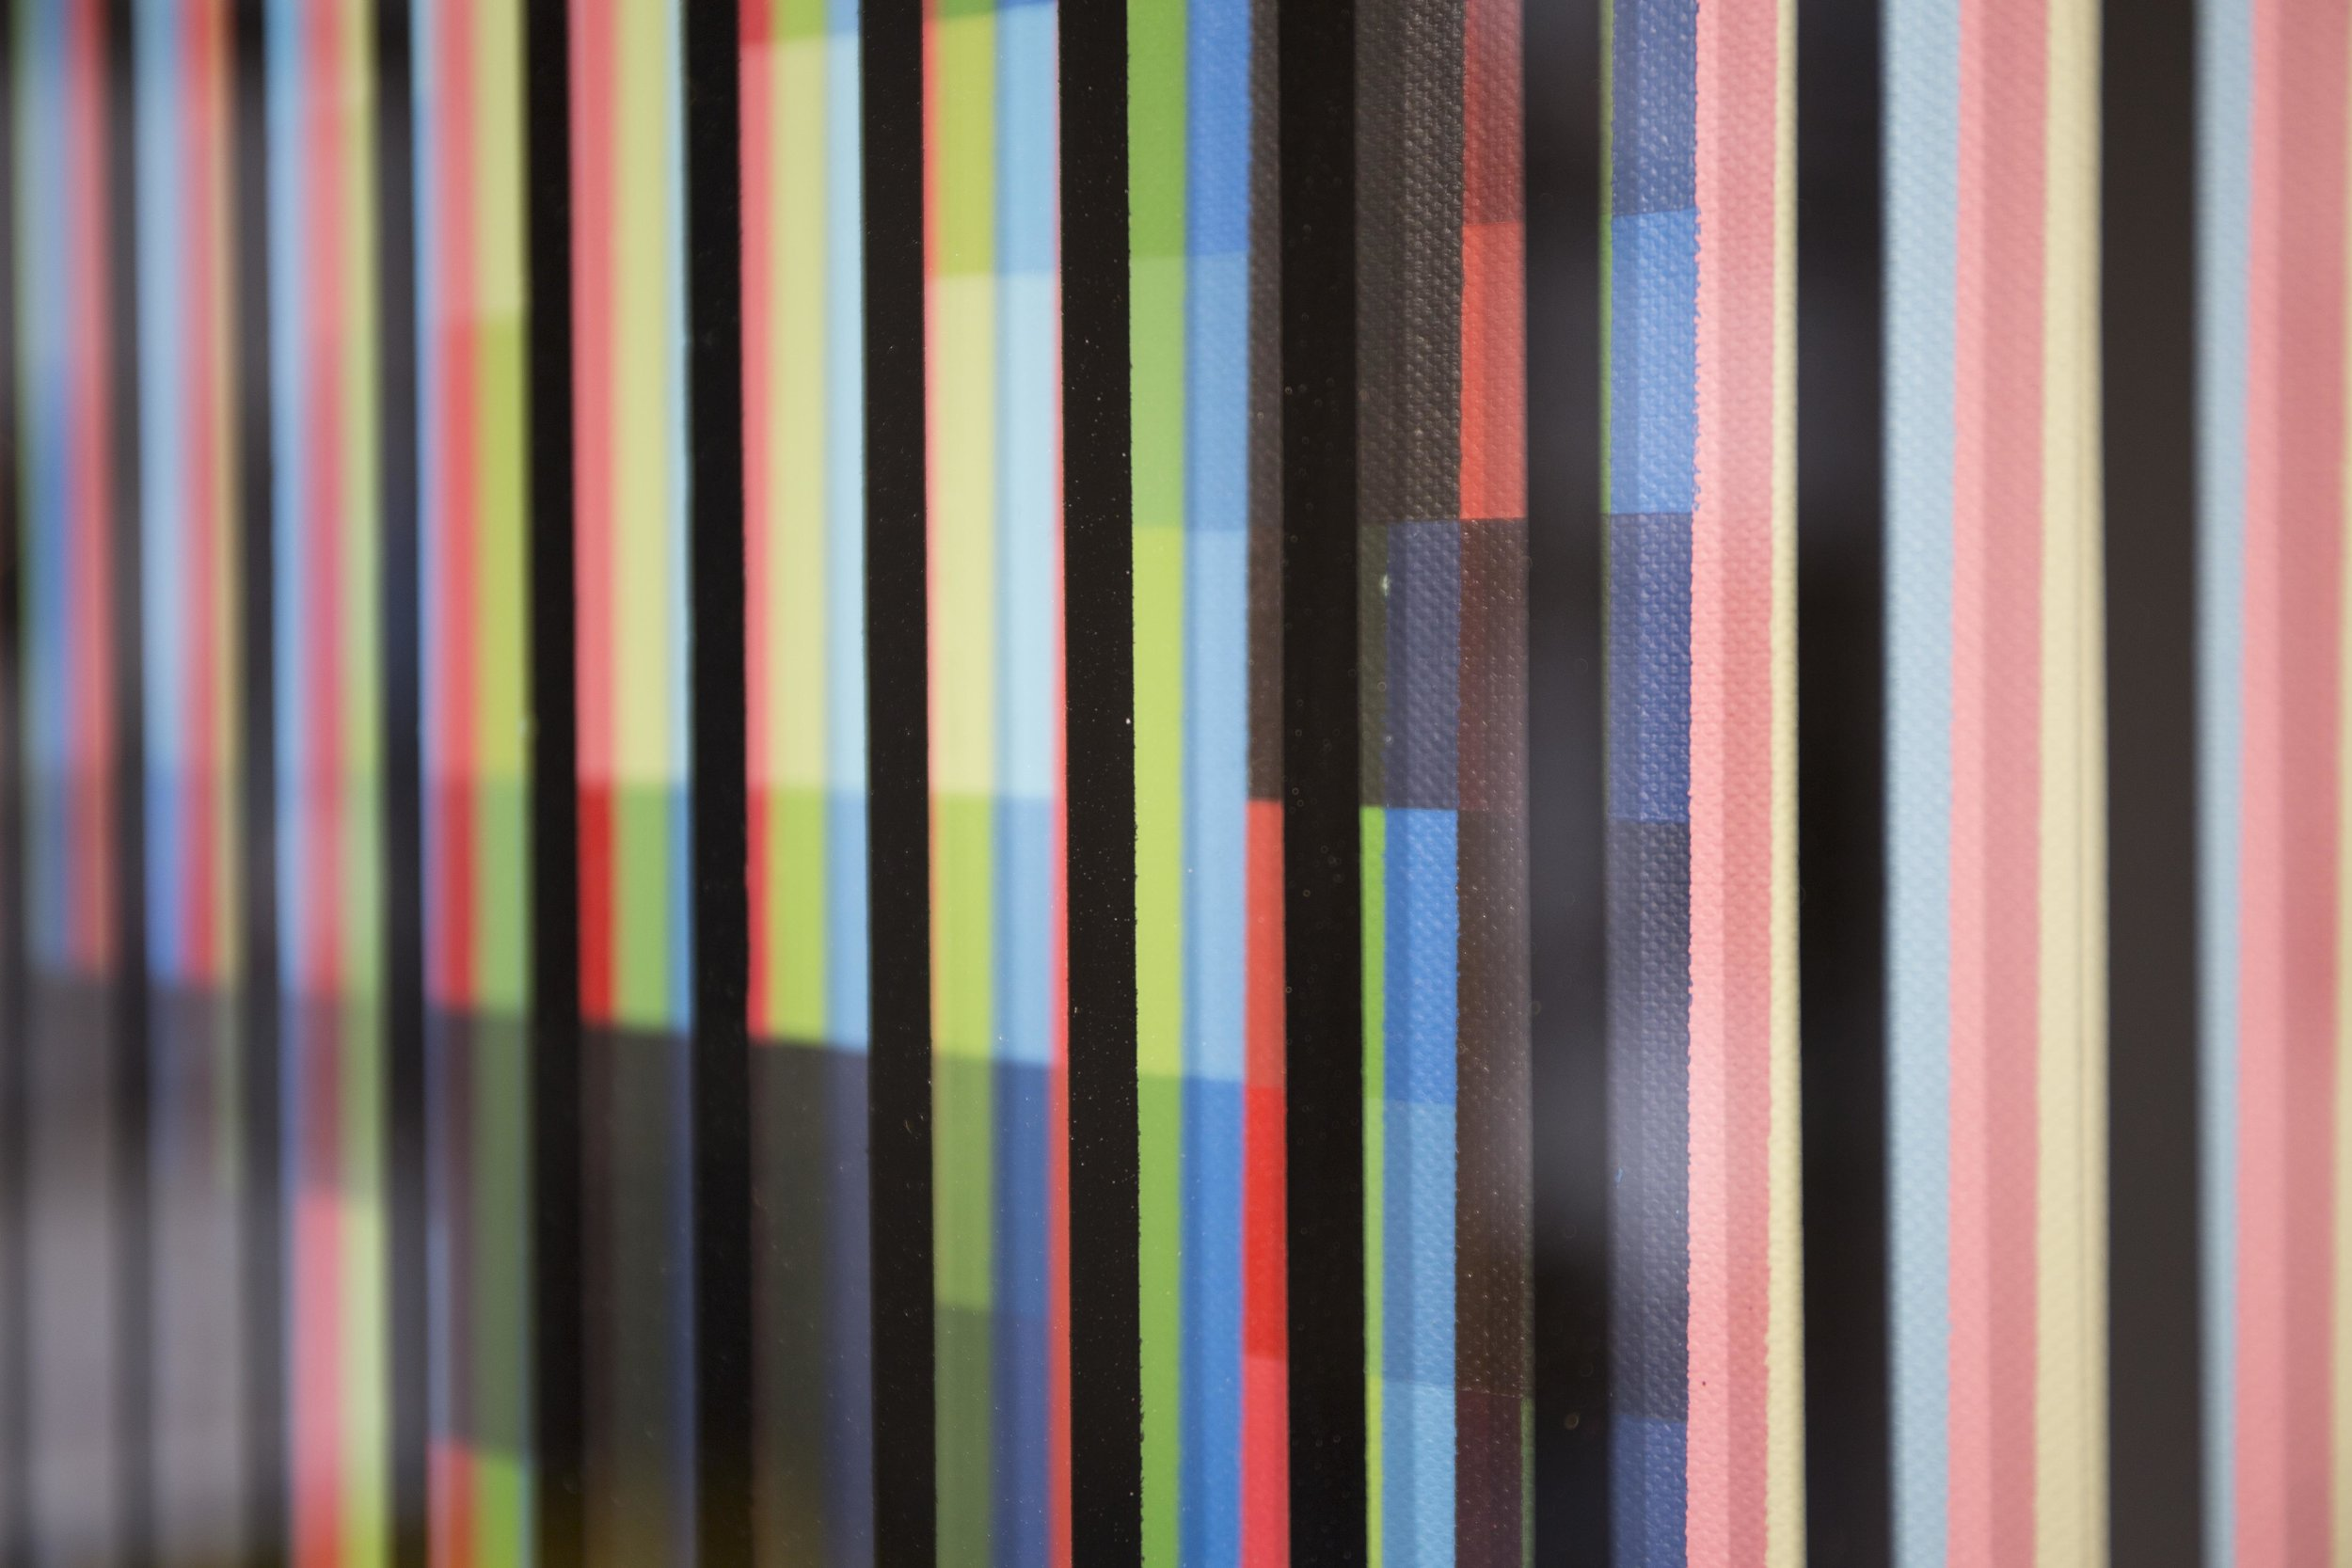 'DI_04' (Detail), 2019, Spray Paint on Canvas and Glass, 70 x 100 cm, Atelier Maser.